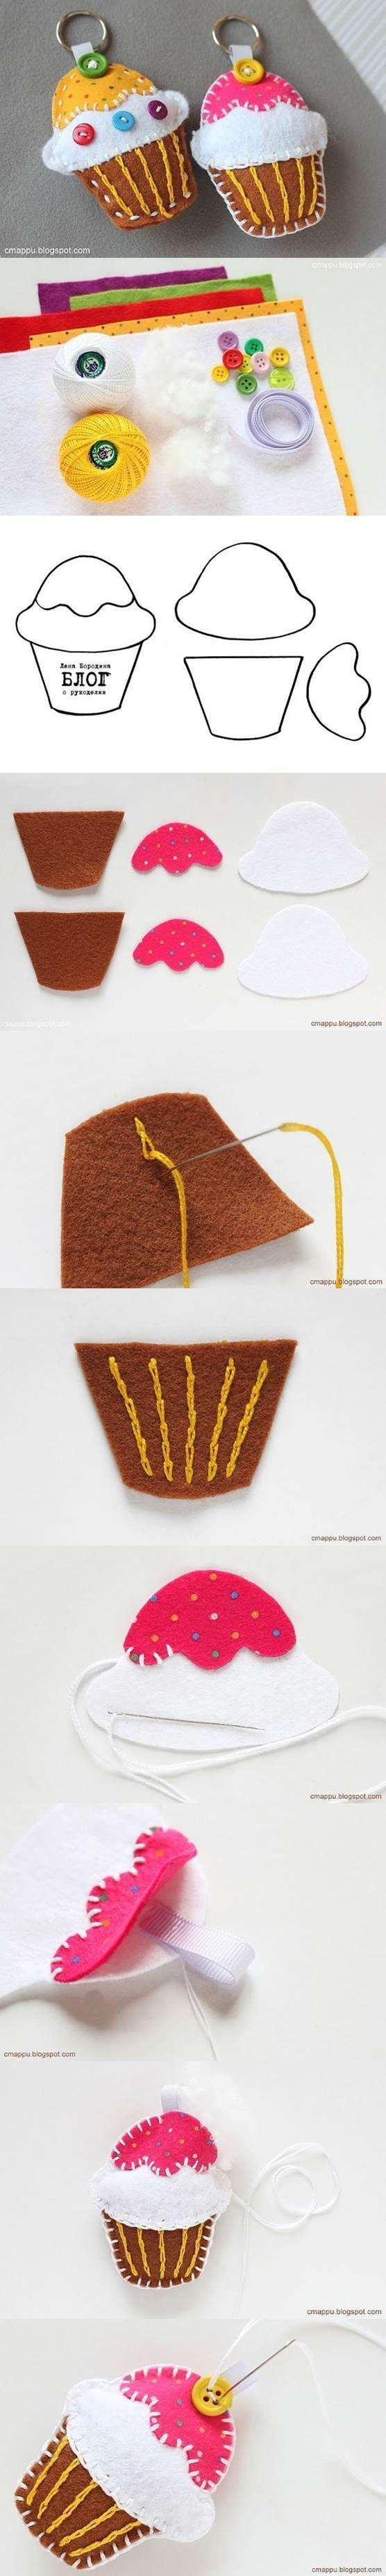 DIY Felt Cupcake Key Chain | iCreativeIdeas.com LIKE Us on Facebook ==> https://www.facebook.com/icreativeideas